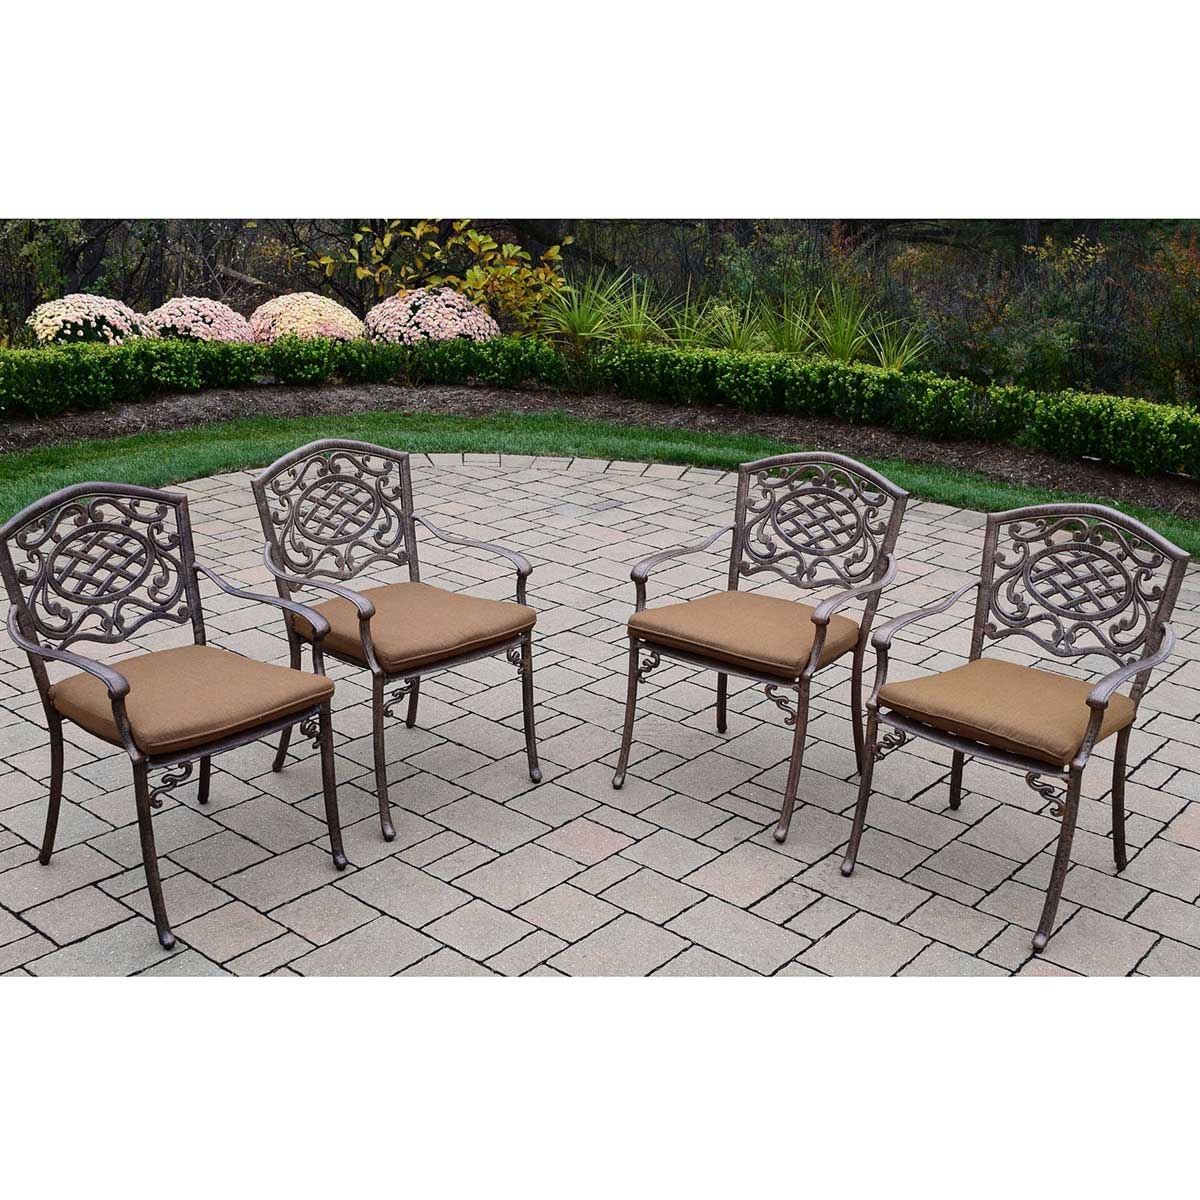 Oakland Living Mississippi Cast Aluminum Sunbrella Cushioned Stackable  Chairs   Set Of 4 In Antique Bronze